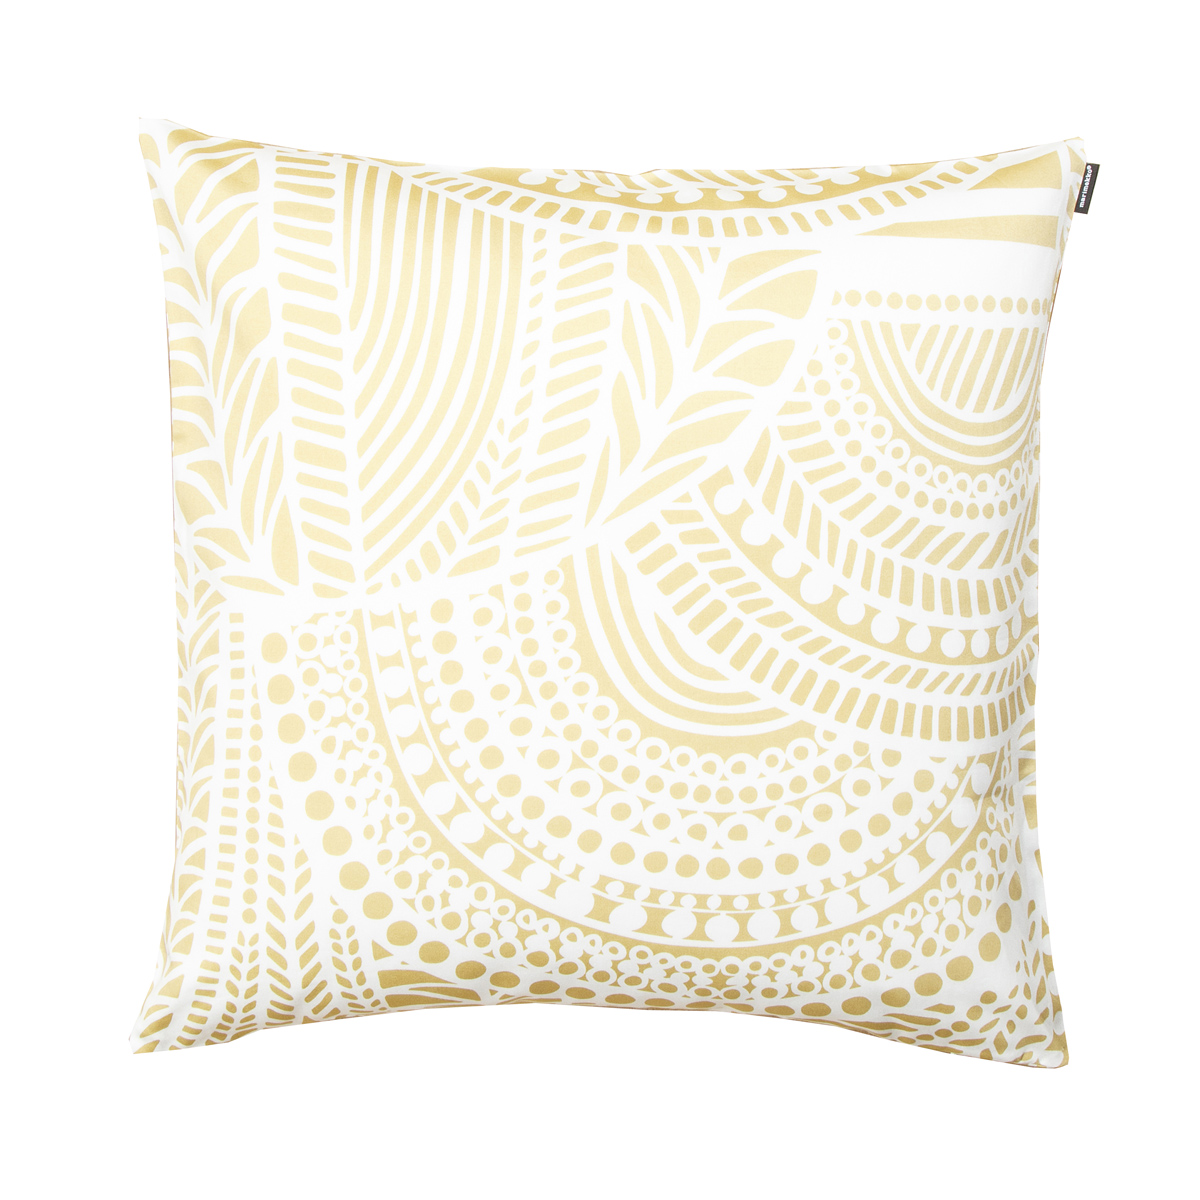 Decorative Pillows White And Gold : Marimekko Vuorilaakso White / Gold Throw Pillow - New Arrivals